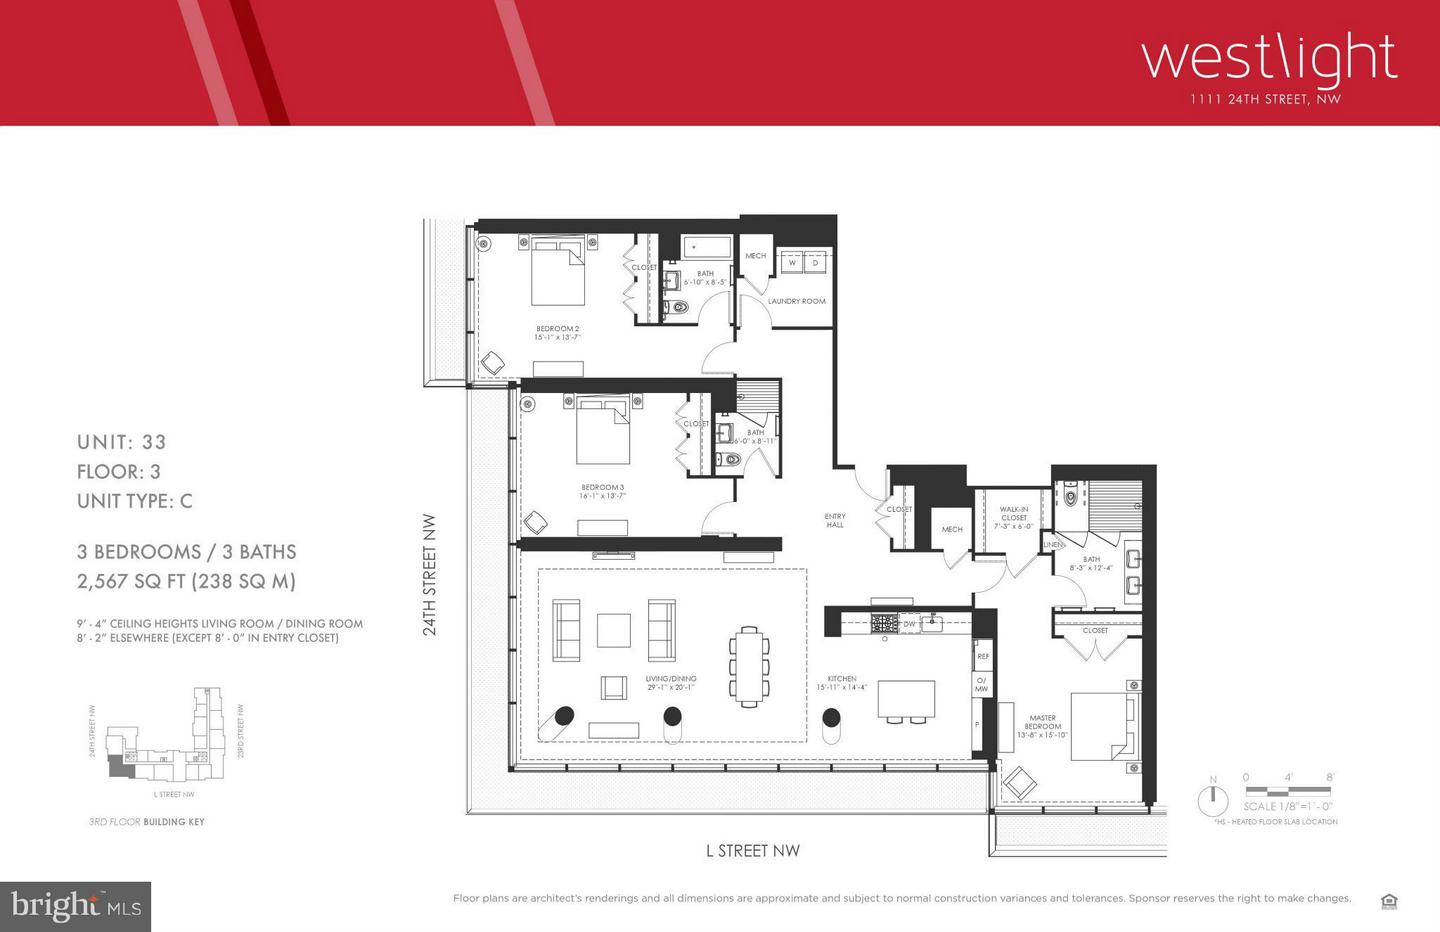 Single Family Home for Sale at 1111 24th St Nw #3-C 1111 24th St Nw #3-C Washington, District Of Columbia 20037 United States